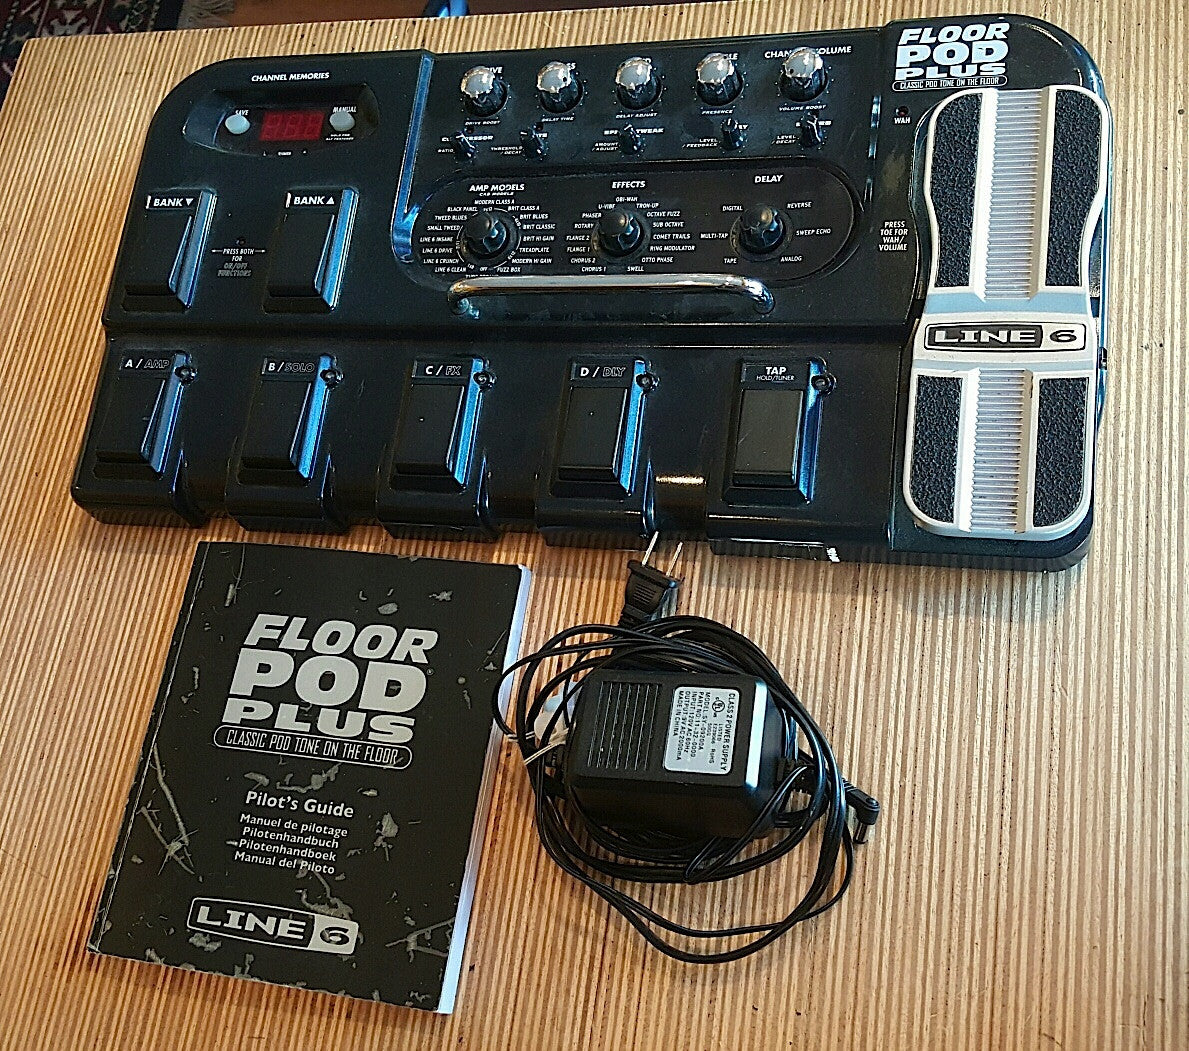 Pre-Owned Line 6 Floor Pod Plus w/Manual